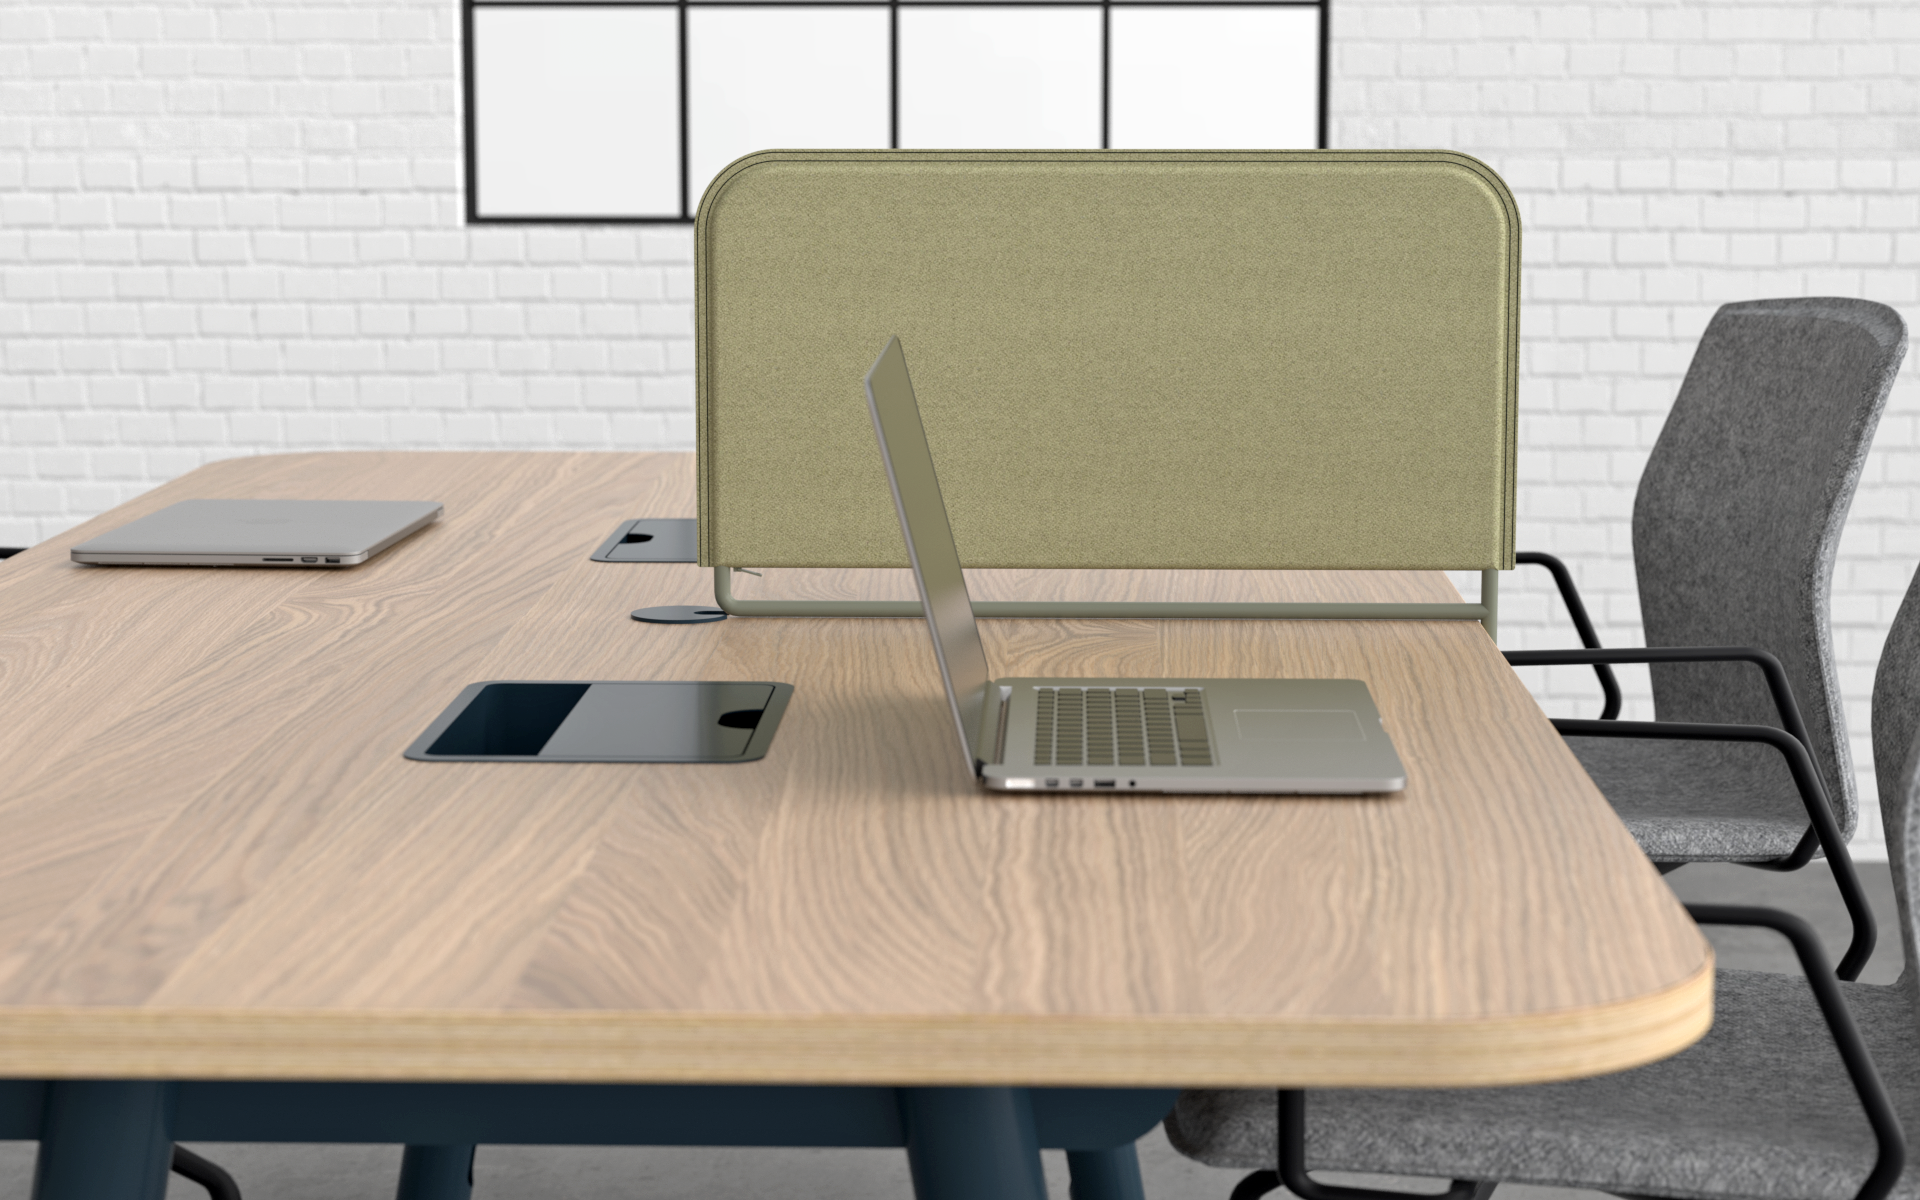 Create privacy in open meeting rooms